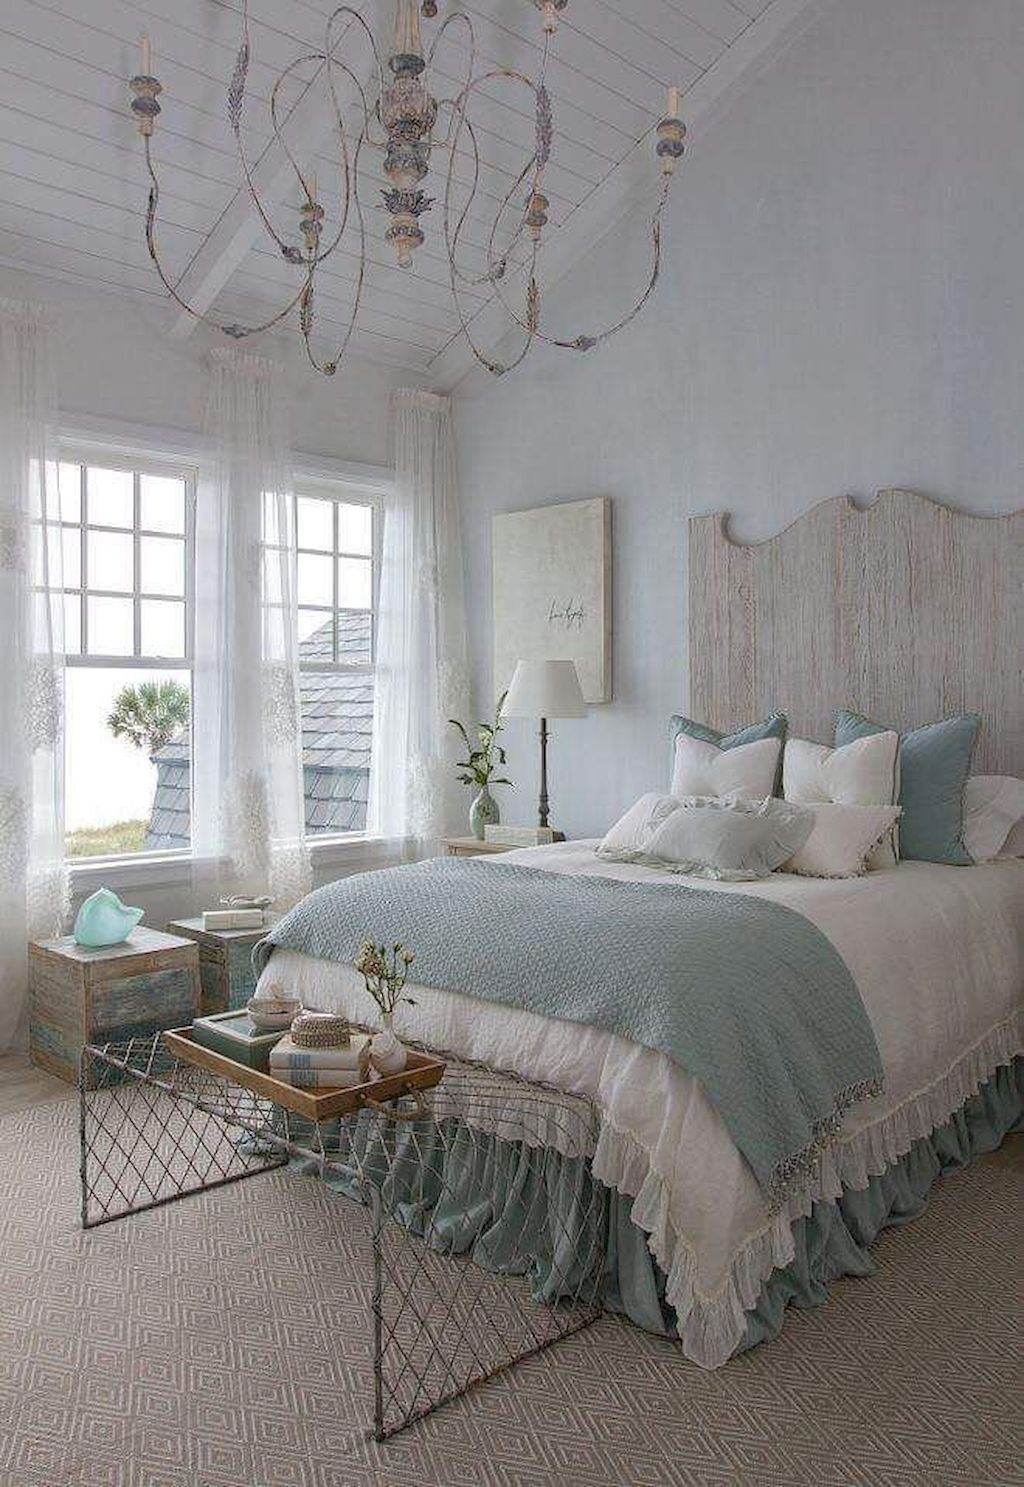 70 Simple French Country Bedroom Decor Ideas on A Budget ...